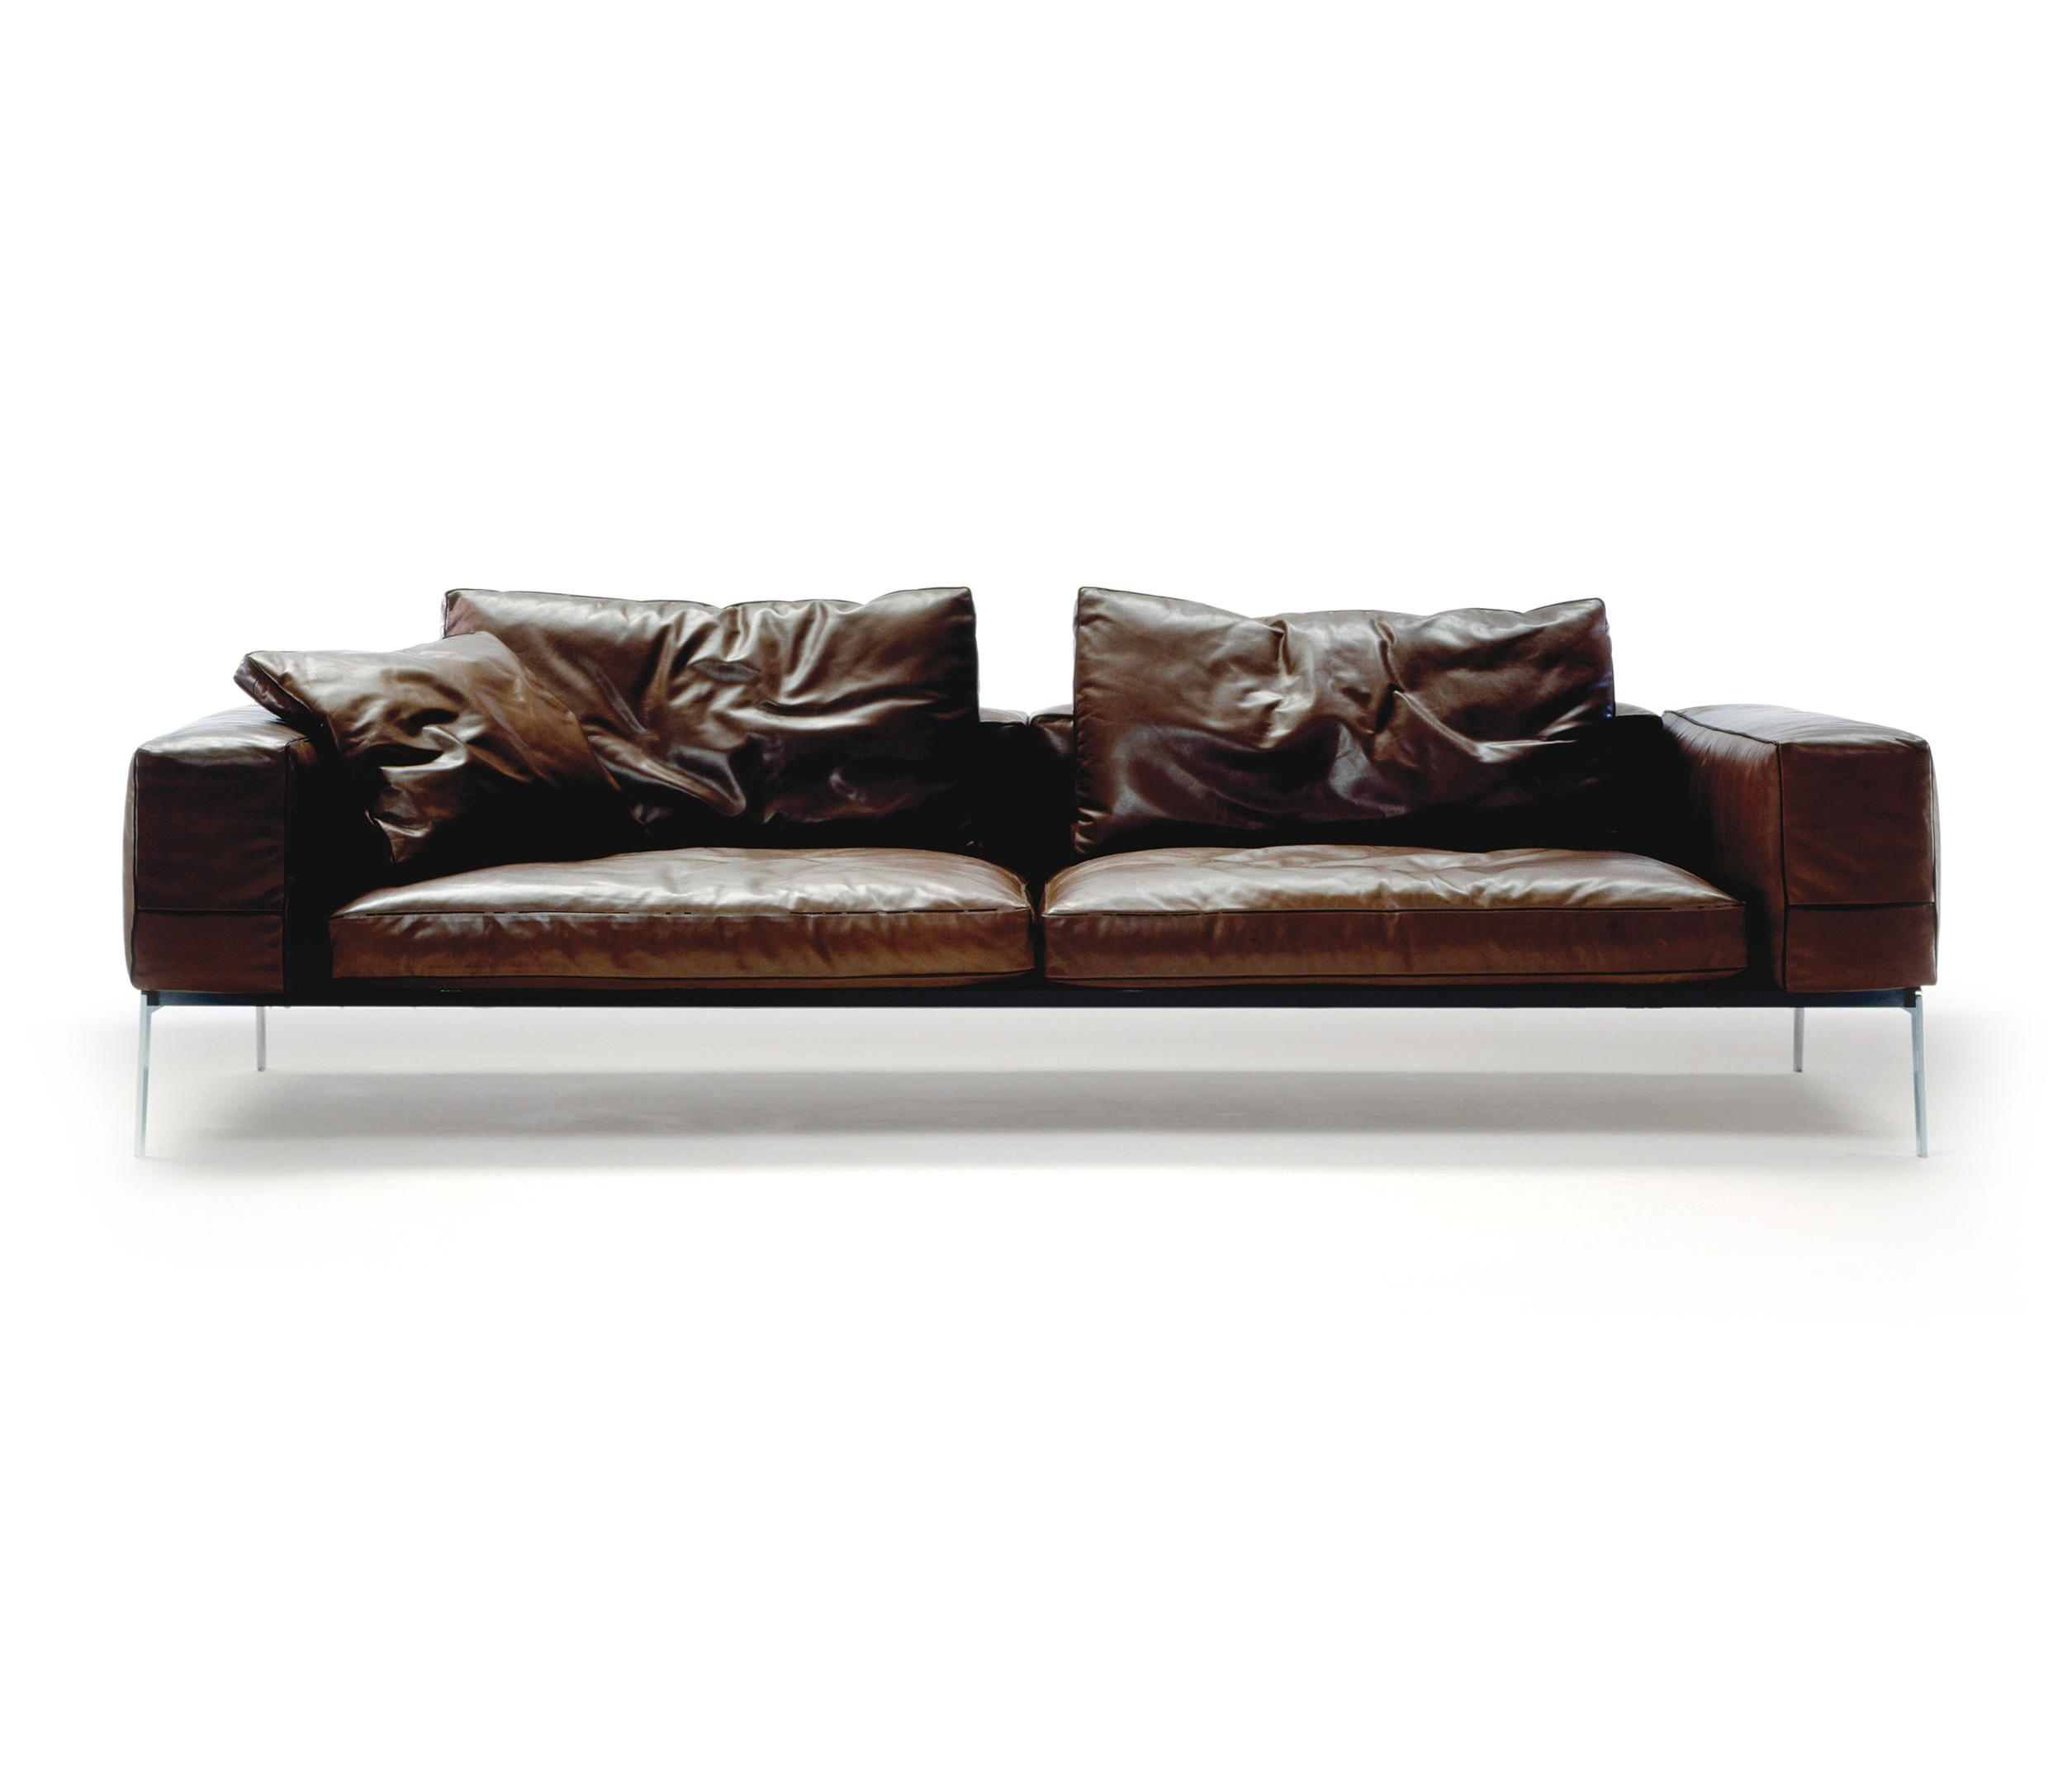 Lifesteel – Lounge Sofas From Flexform | Architonic With Regard To Flexform Sofas (Image 11 of 20)